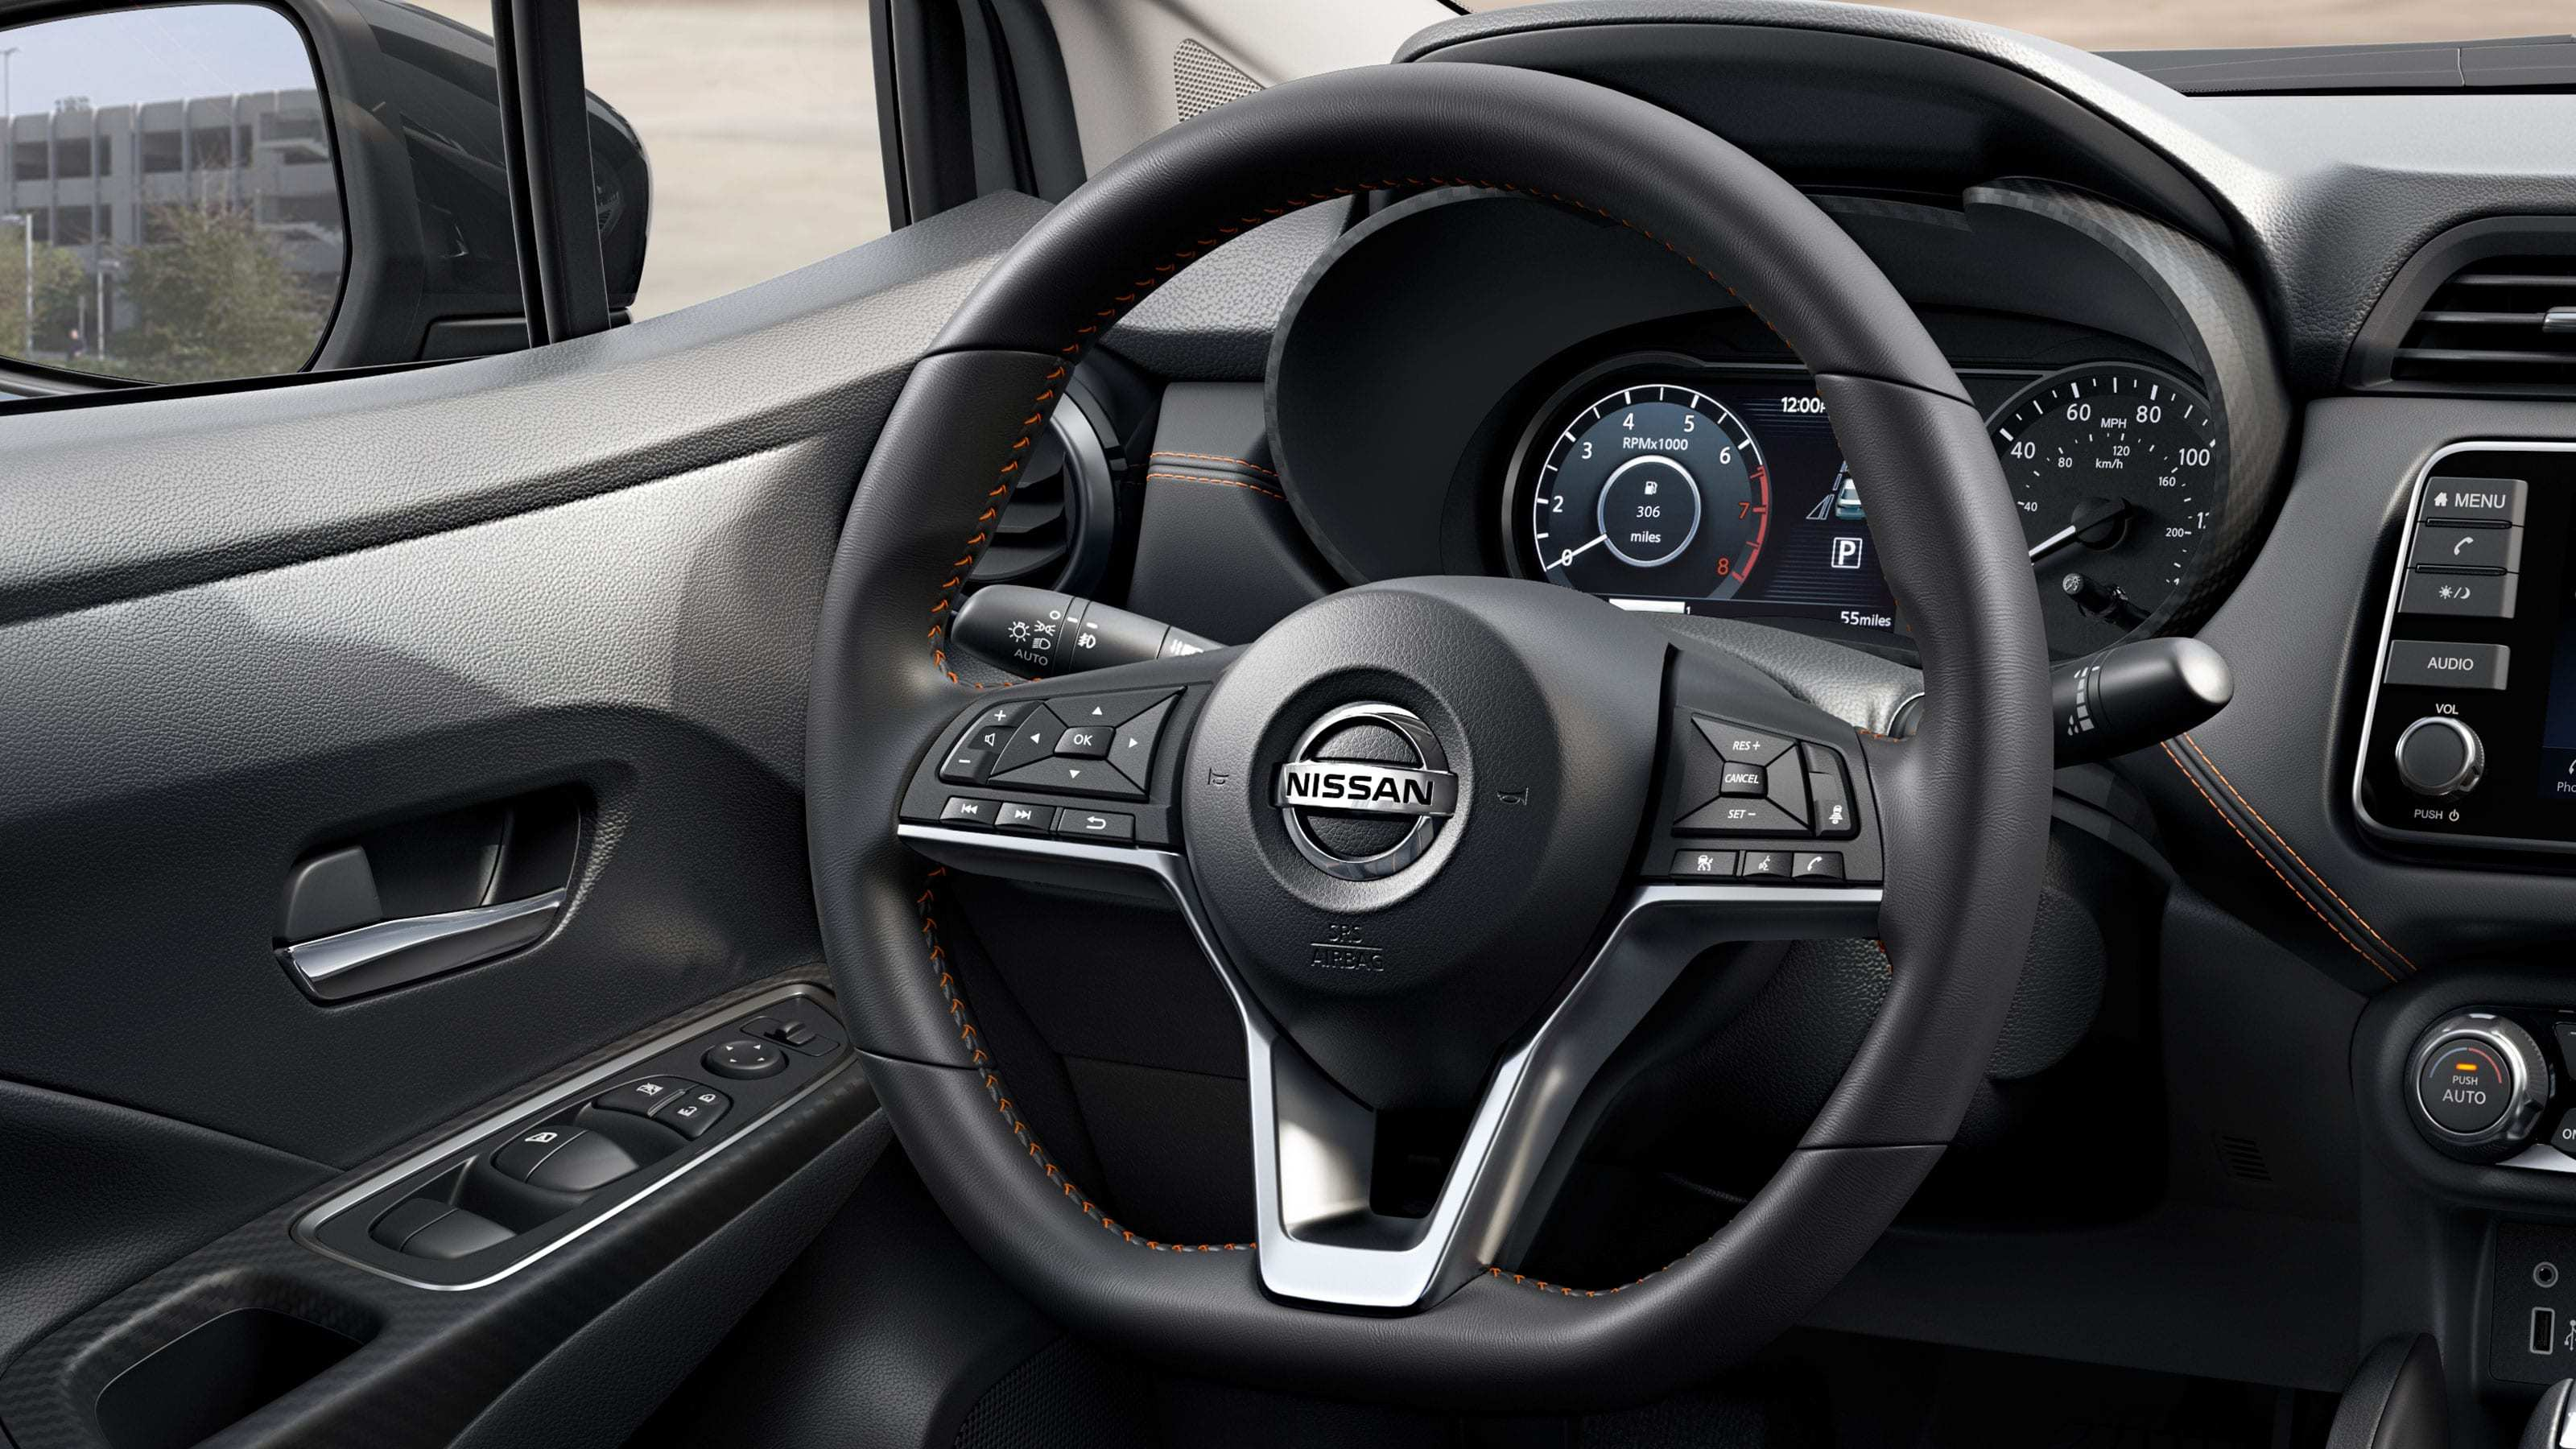 87 The Nissan Versa 2020 Interior Redesign And Concept